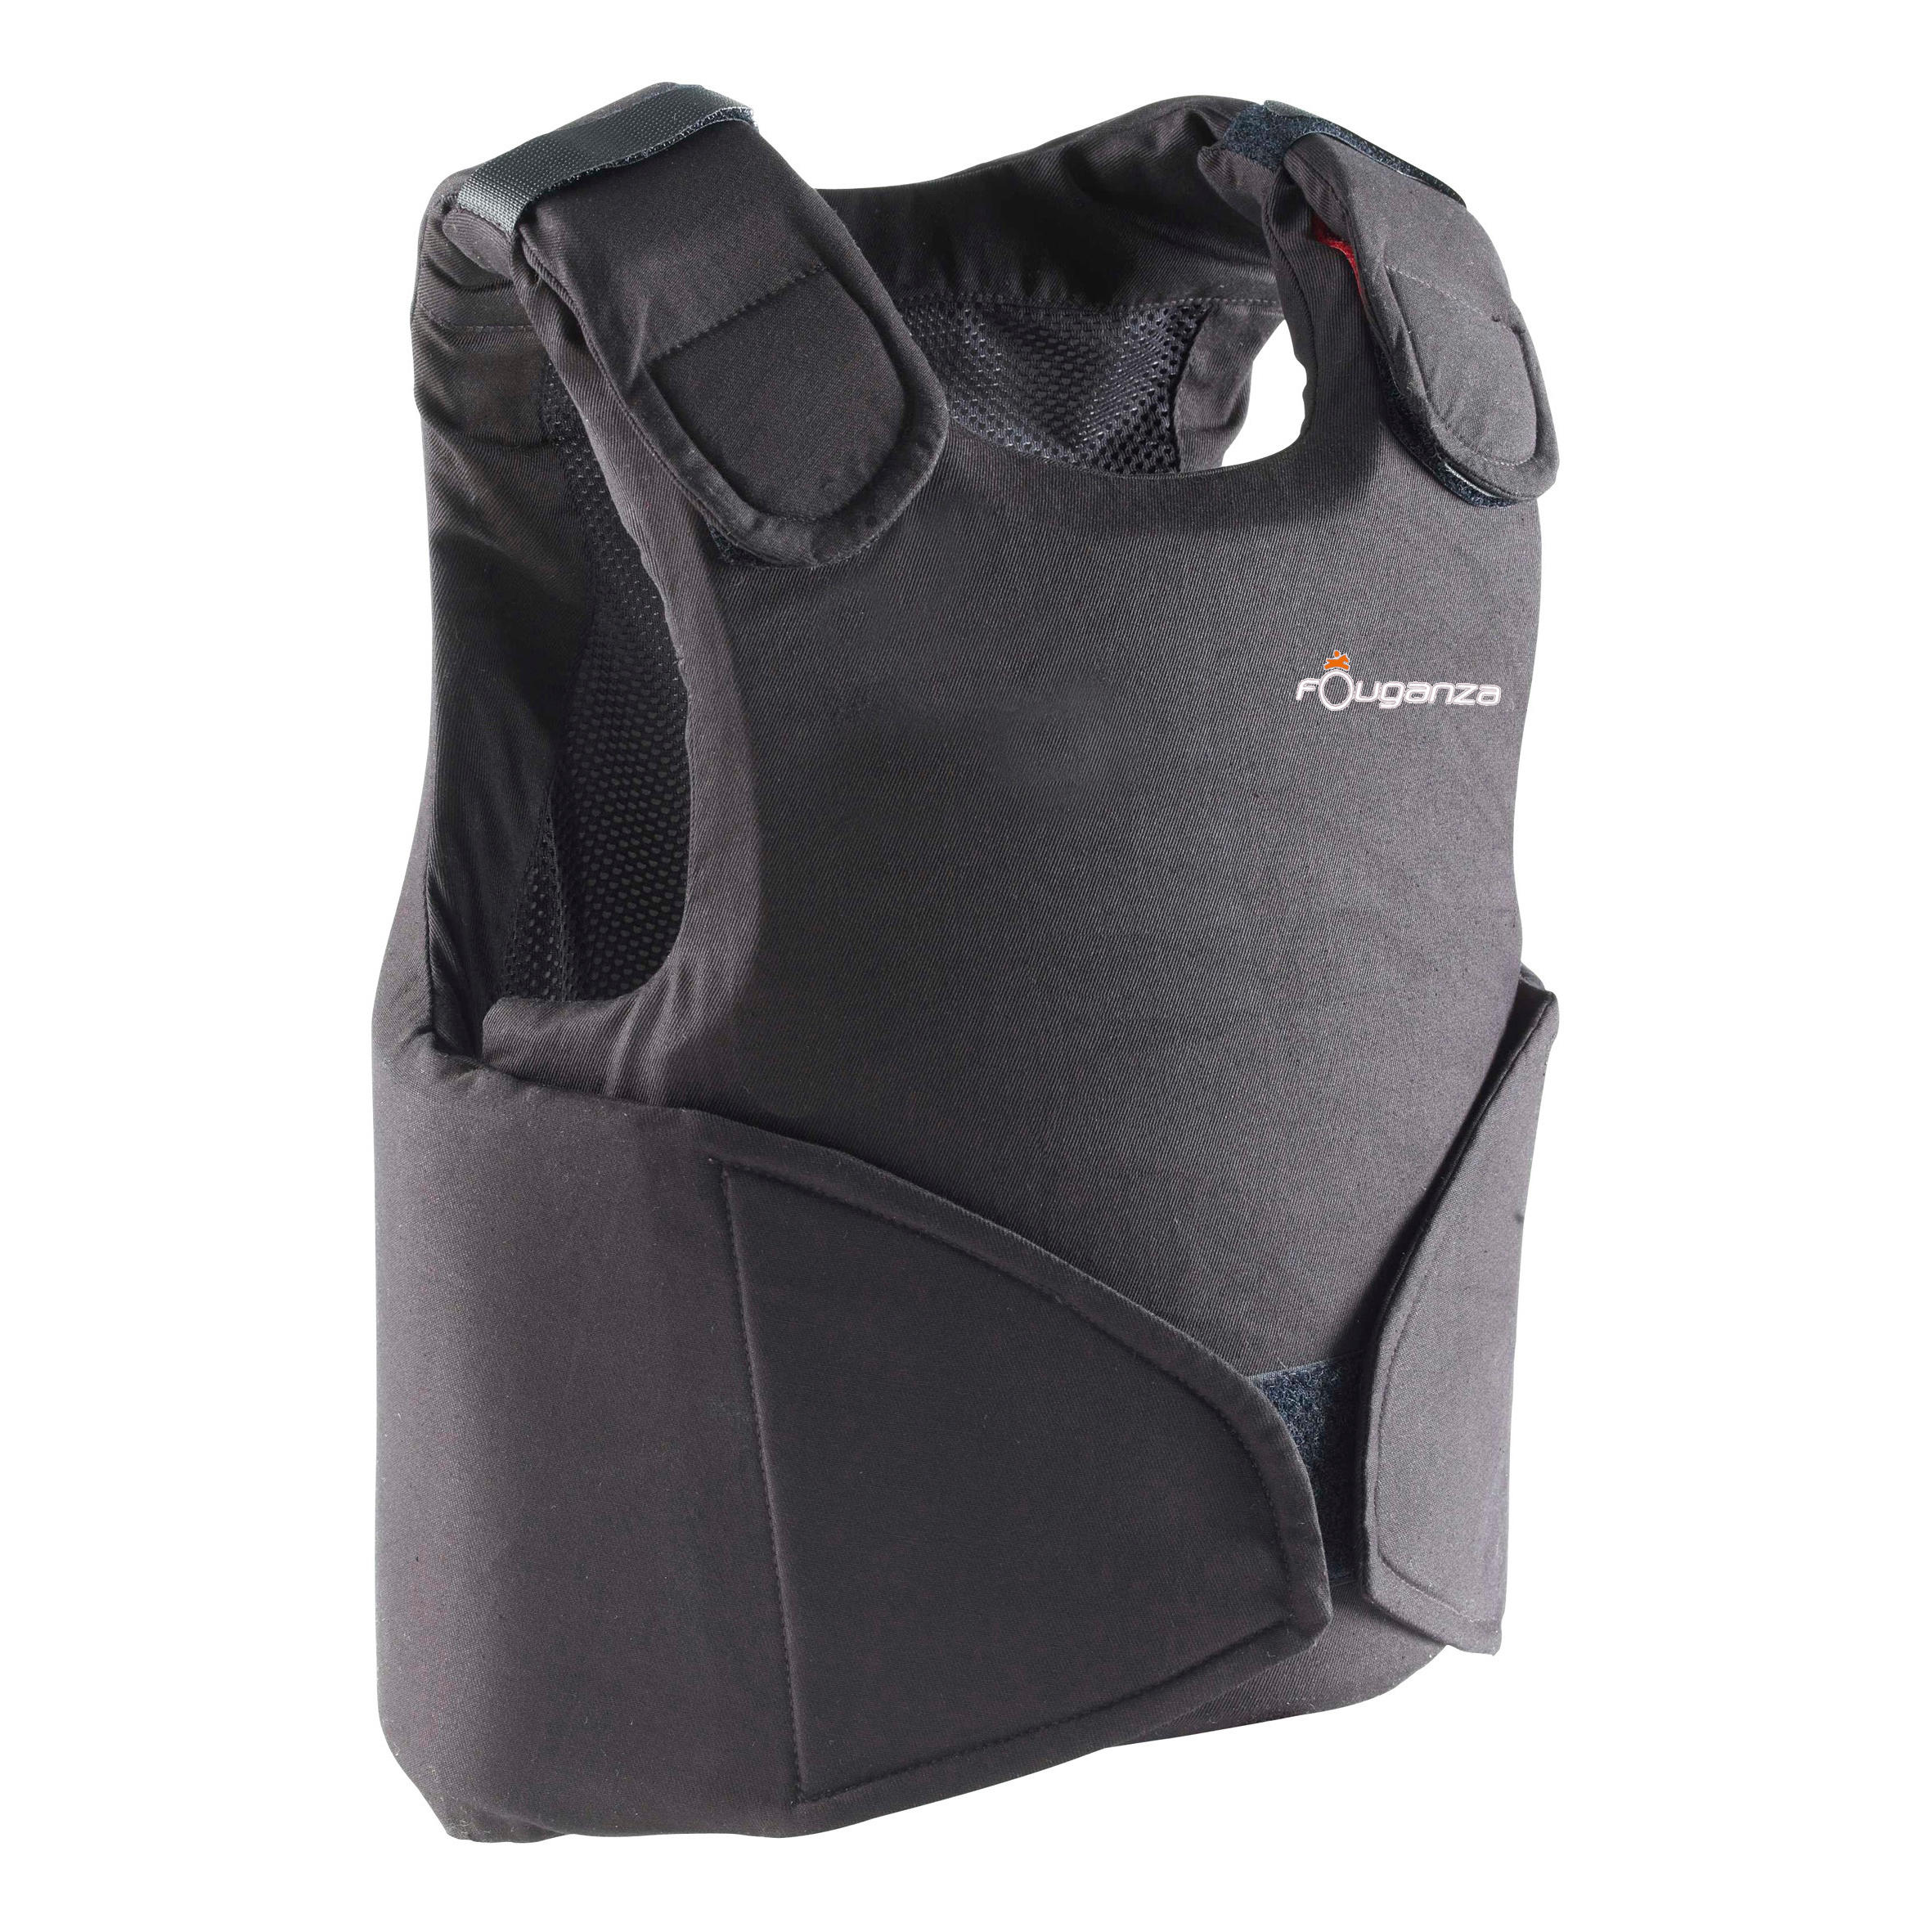 Safety 100 Children's Horse Riding Body Protector - Hitam